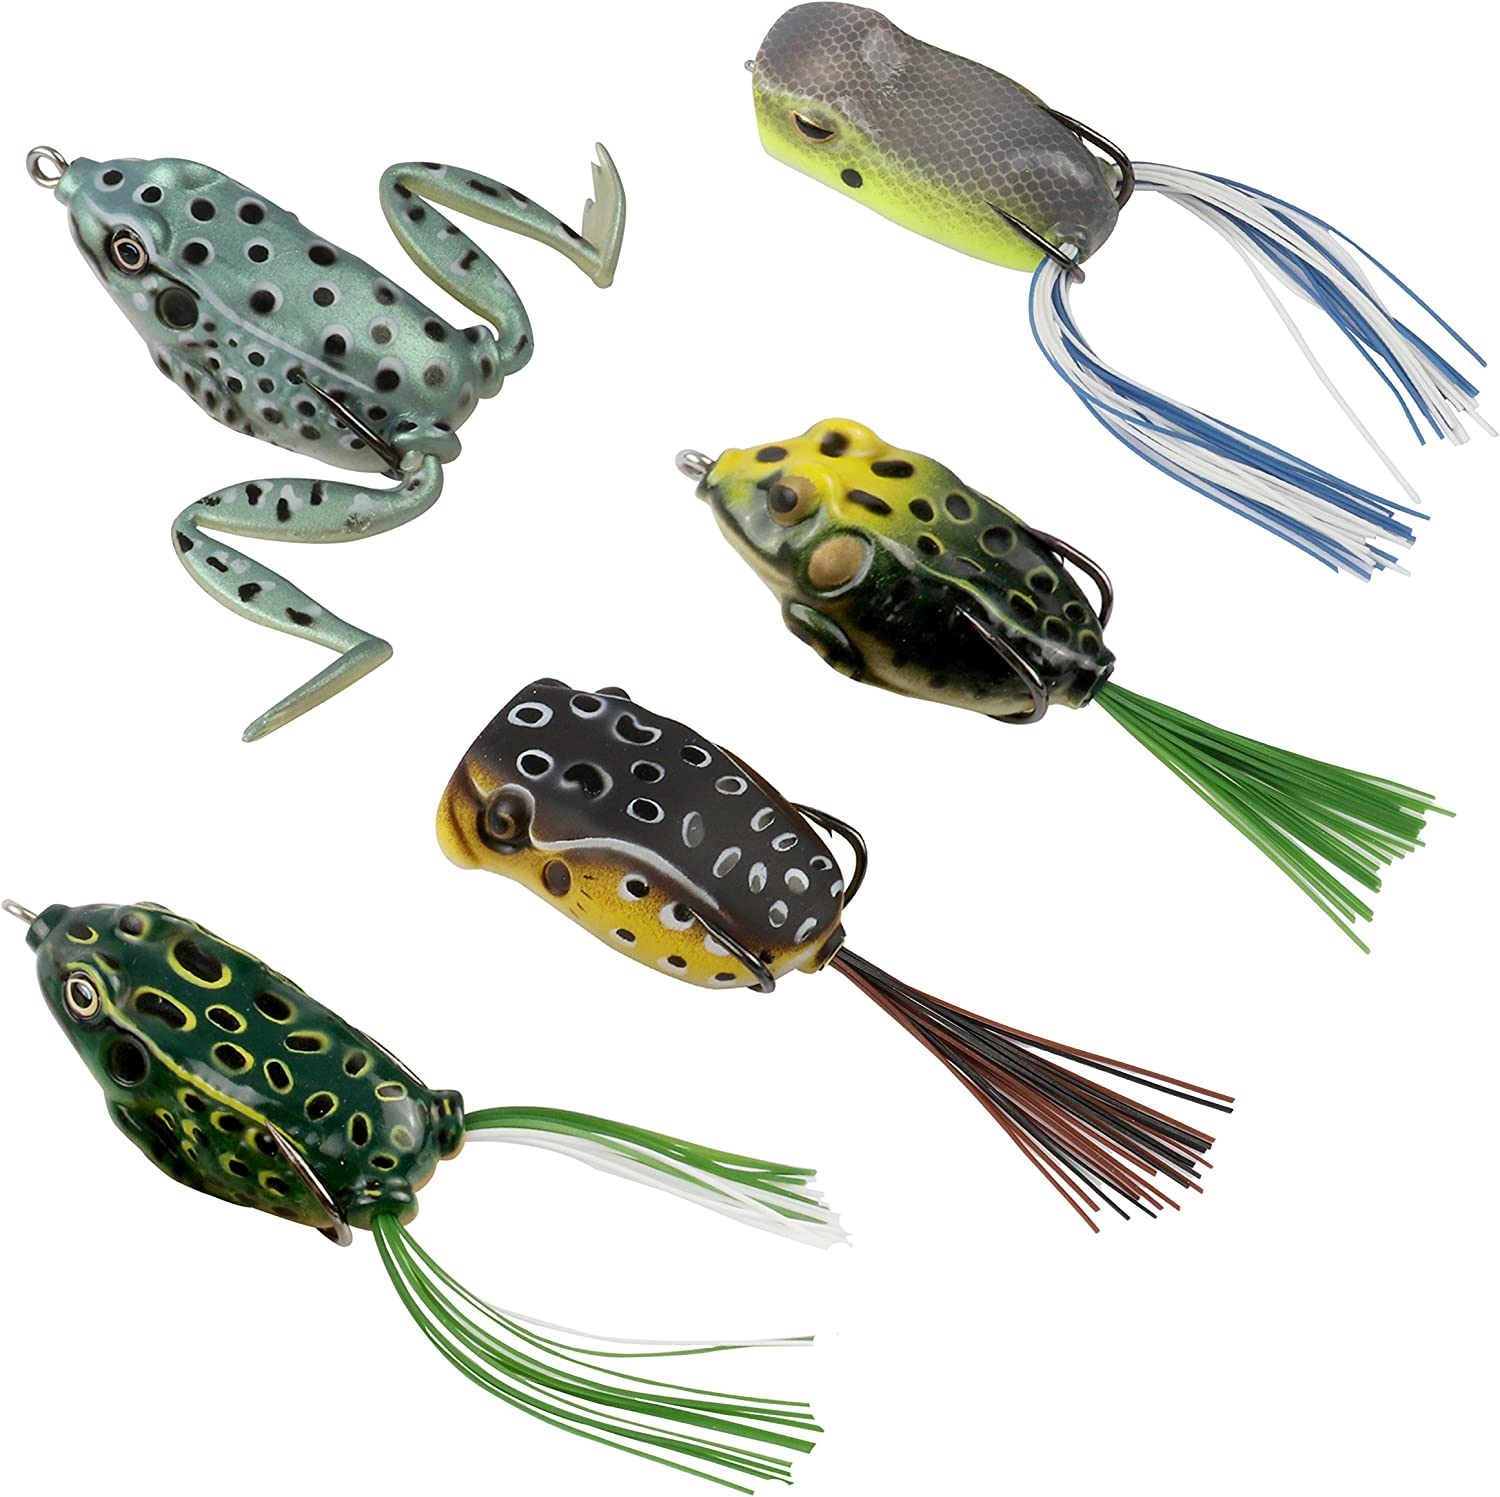 RUNCL Topwater Frog Lures, Soft Fishing Lure Kit with Tackle Box for Bass Pike Snakehead Dogfish Musky (Pack of 5) : Sports & Outdoors